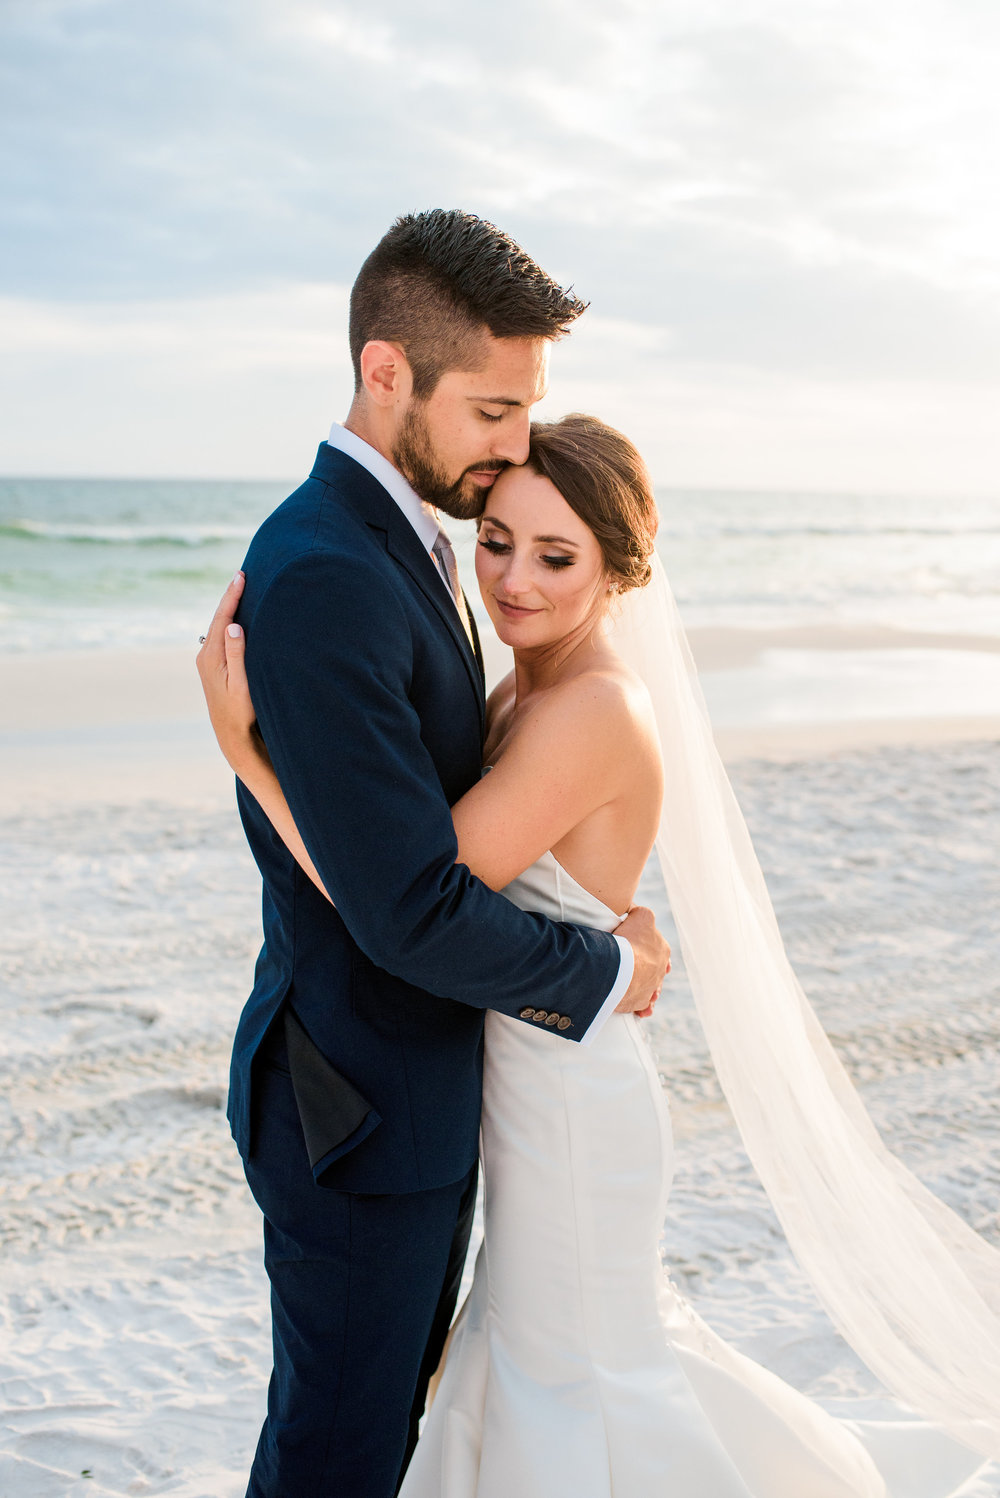 Santa Rosa Beach Wedding30.jpg